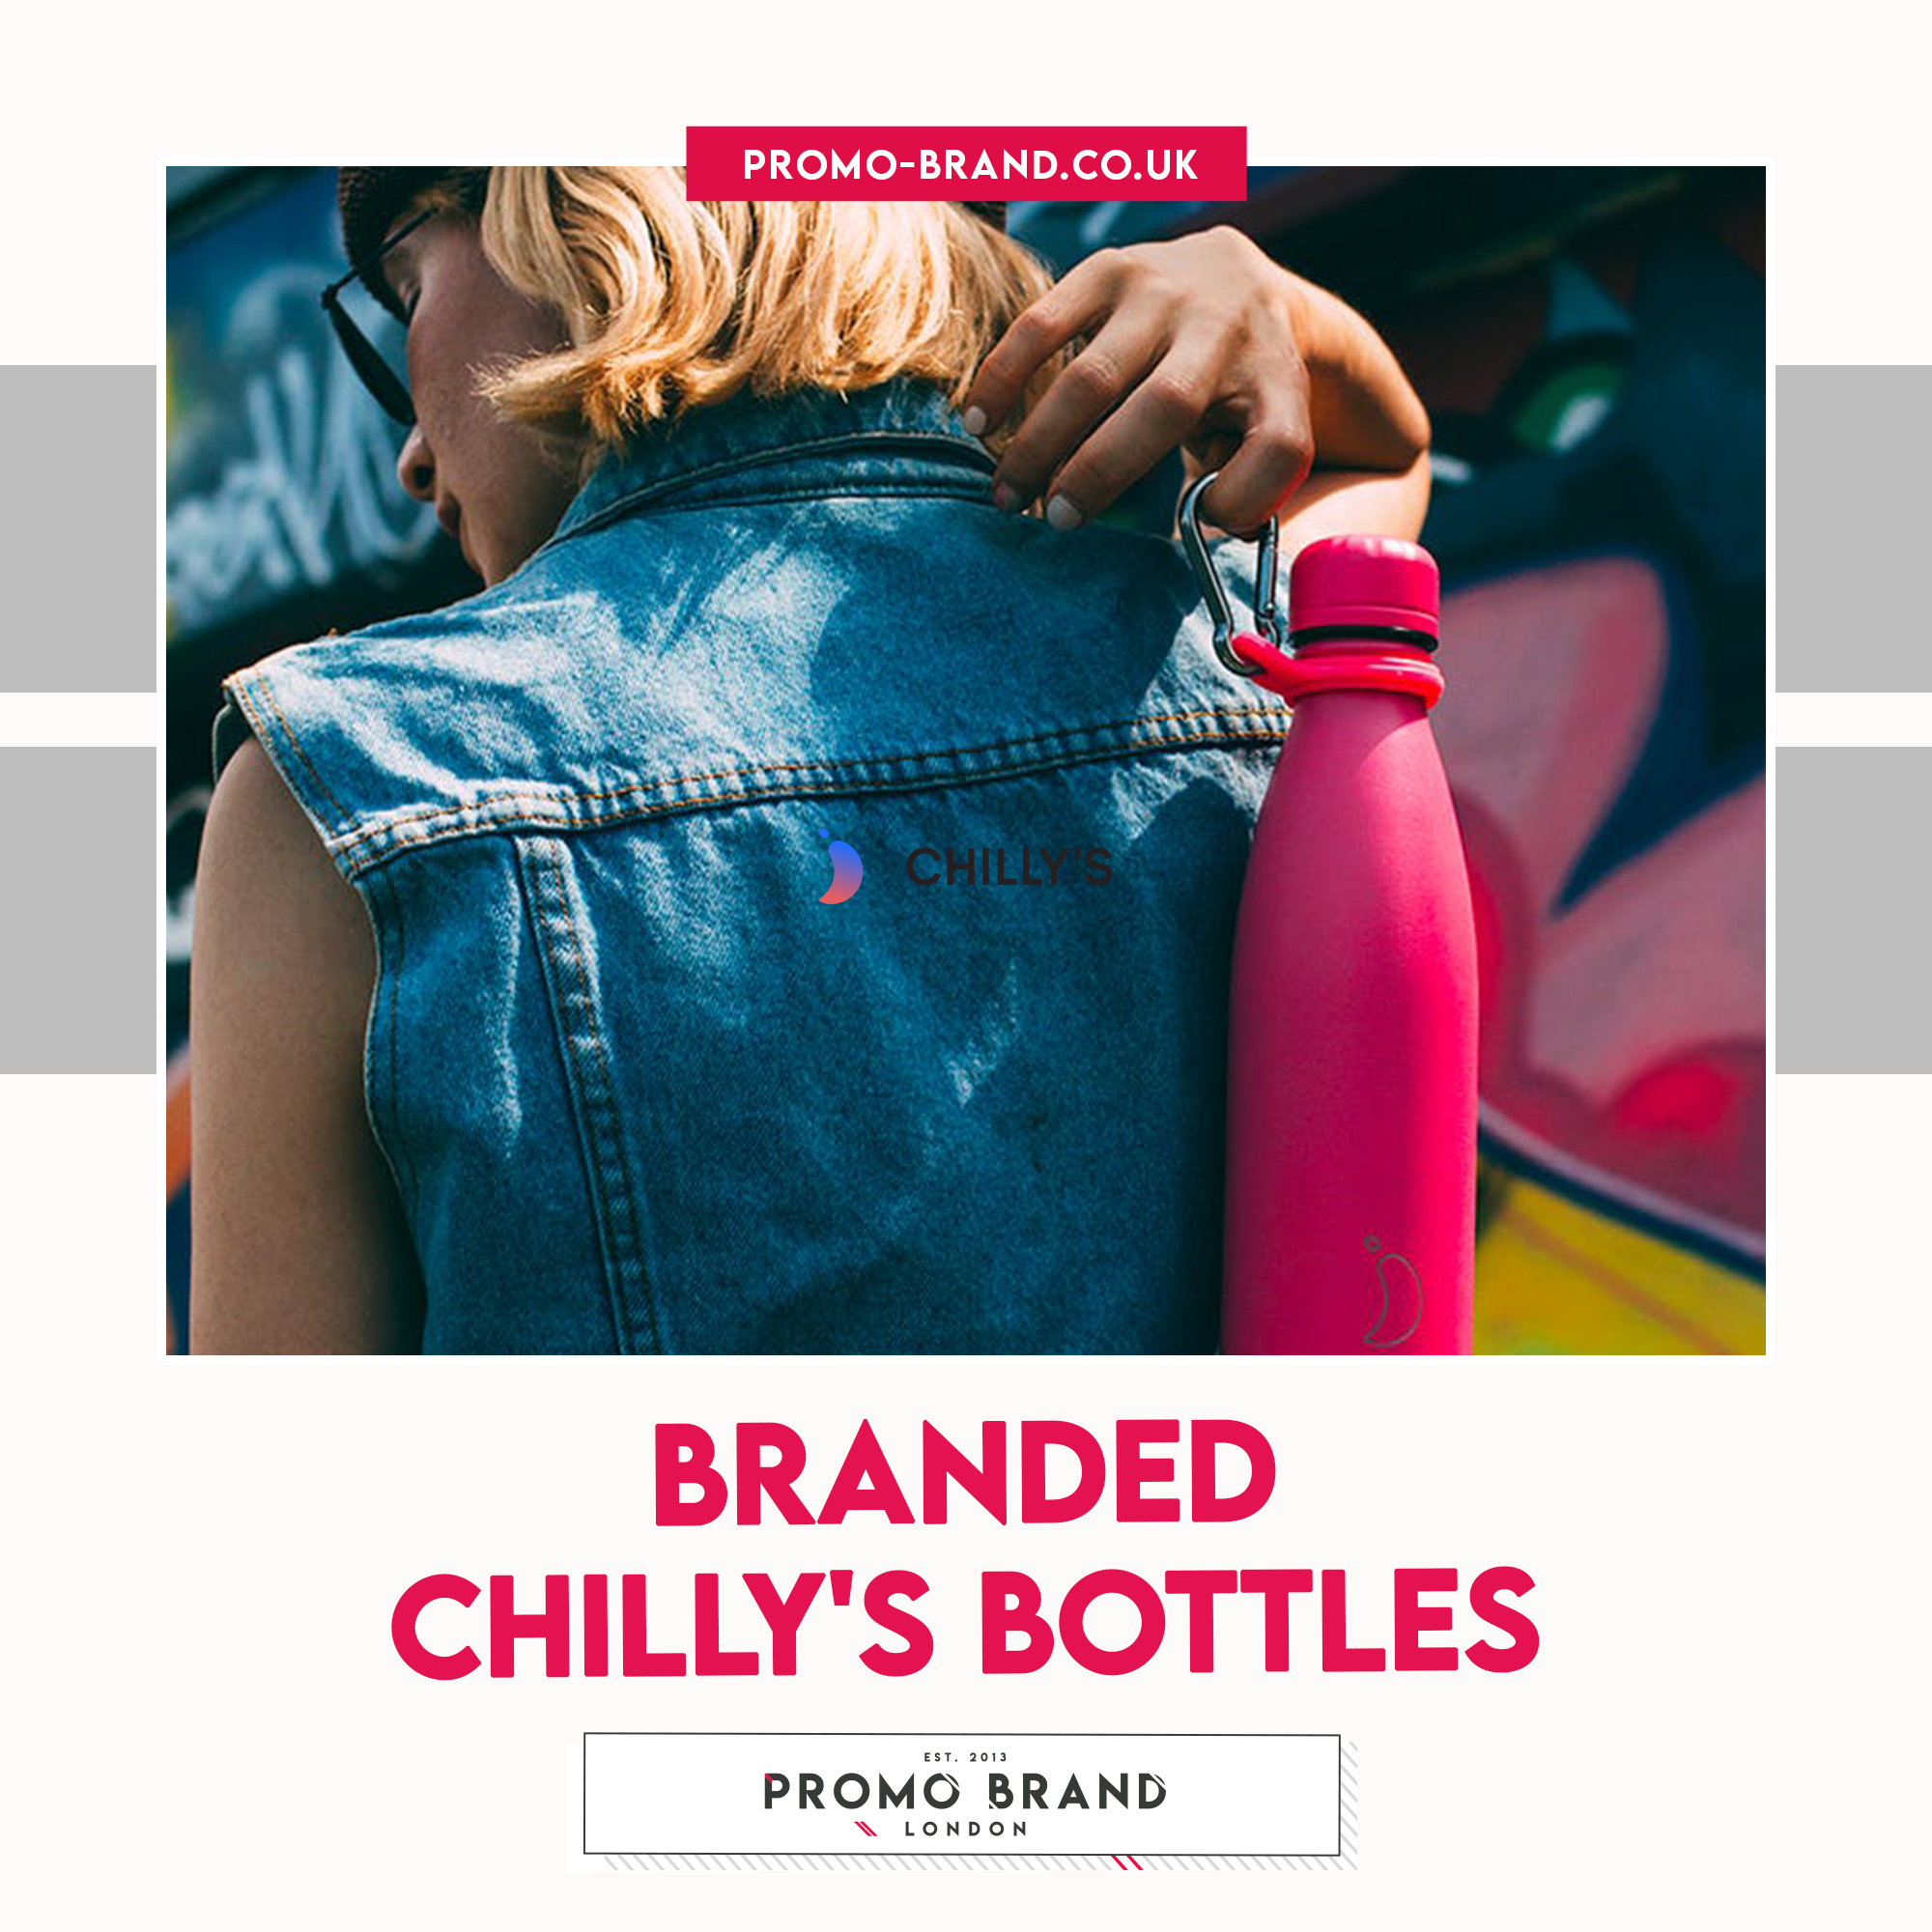 Promotional Branded Chillys bottles Bounce Creative Designs